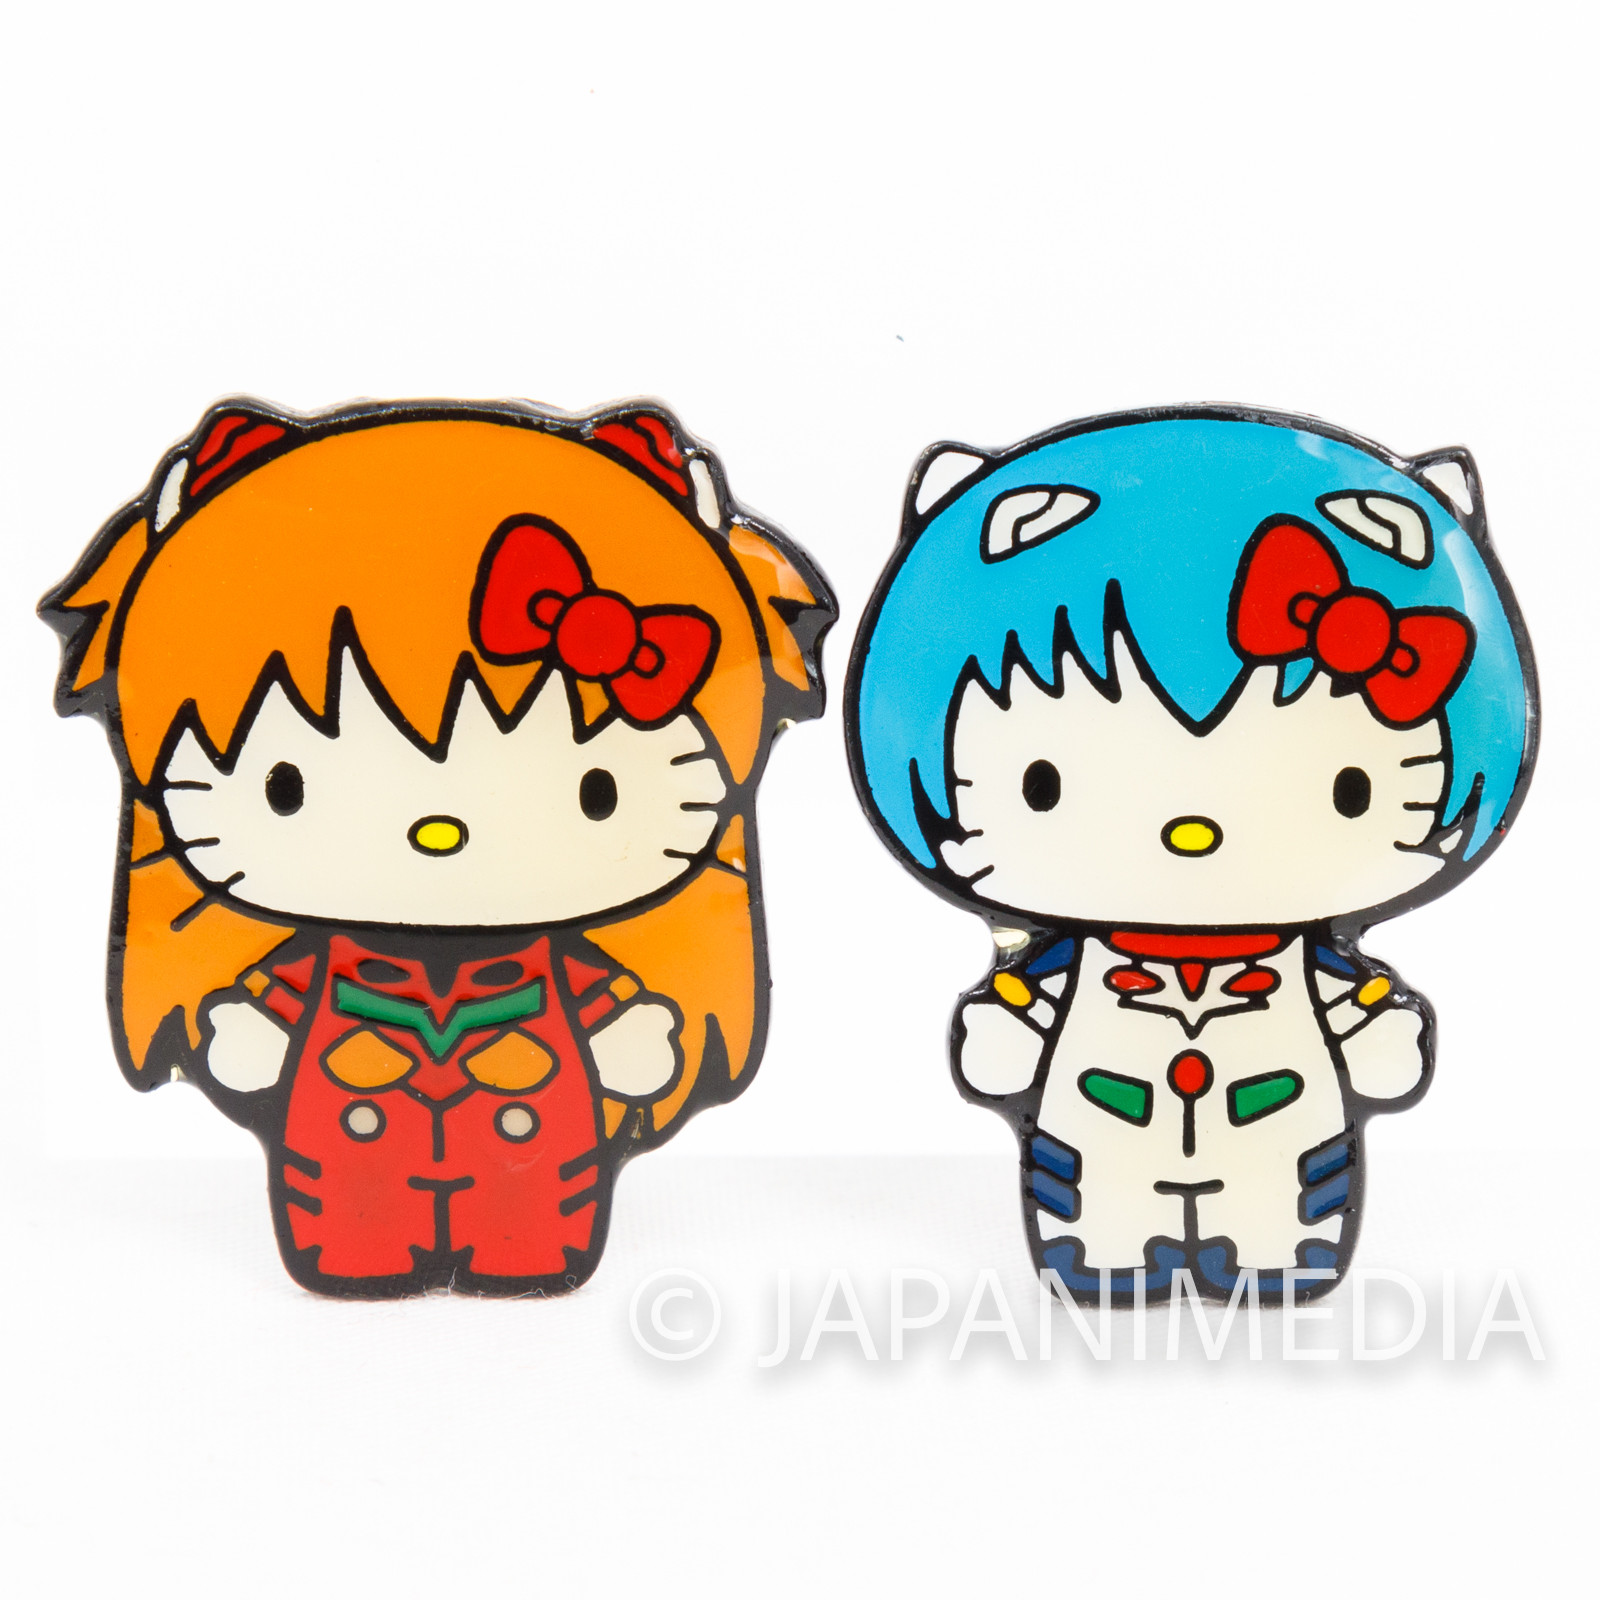 Evangelion Asuka Langley Rei Ayanami x Hello Kitty Metal Pins Set